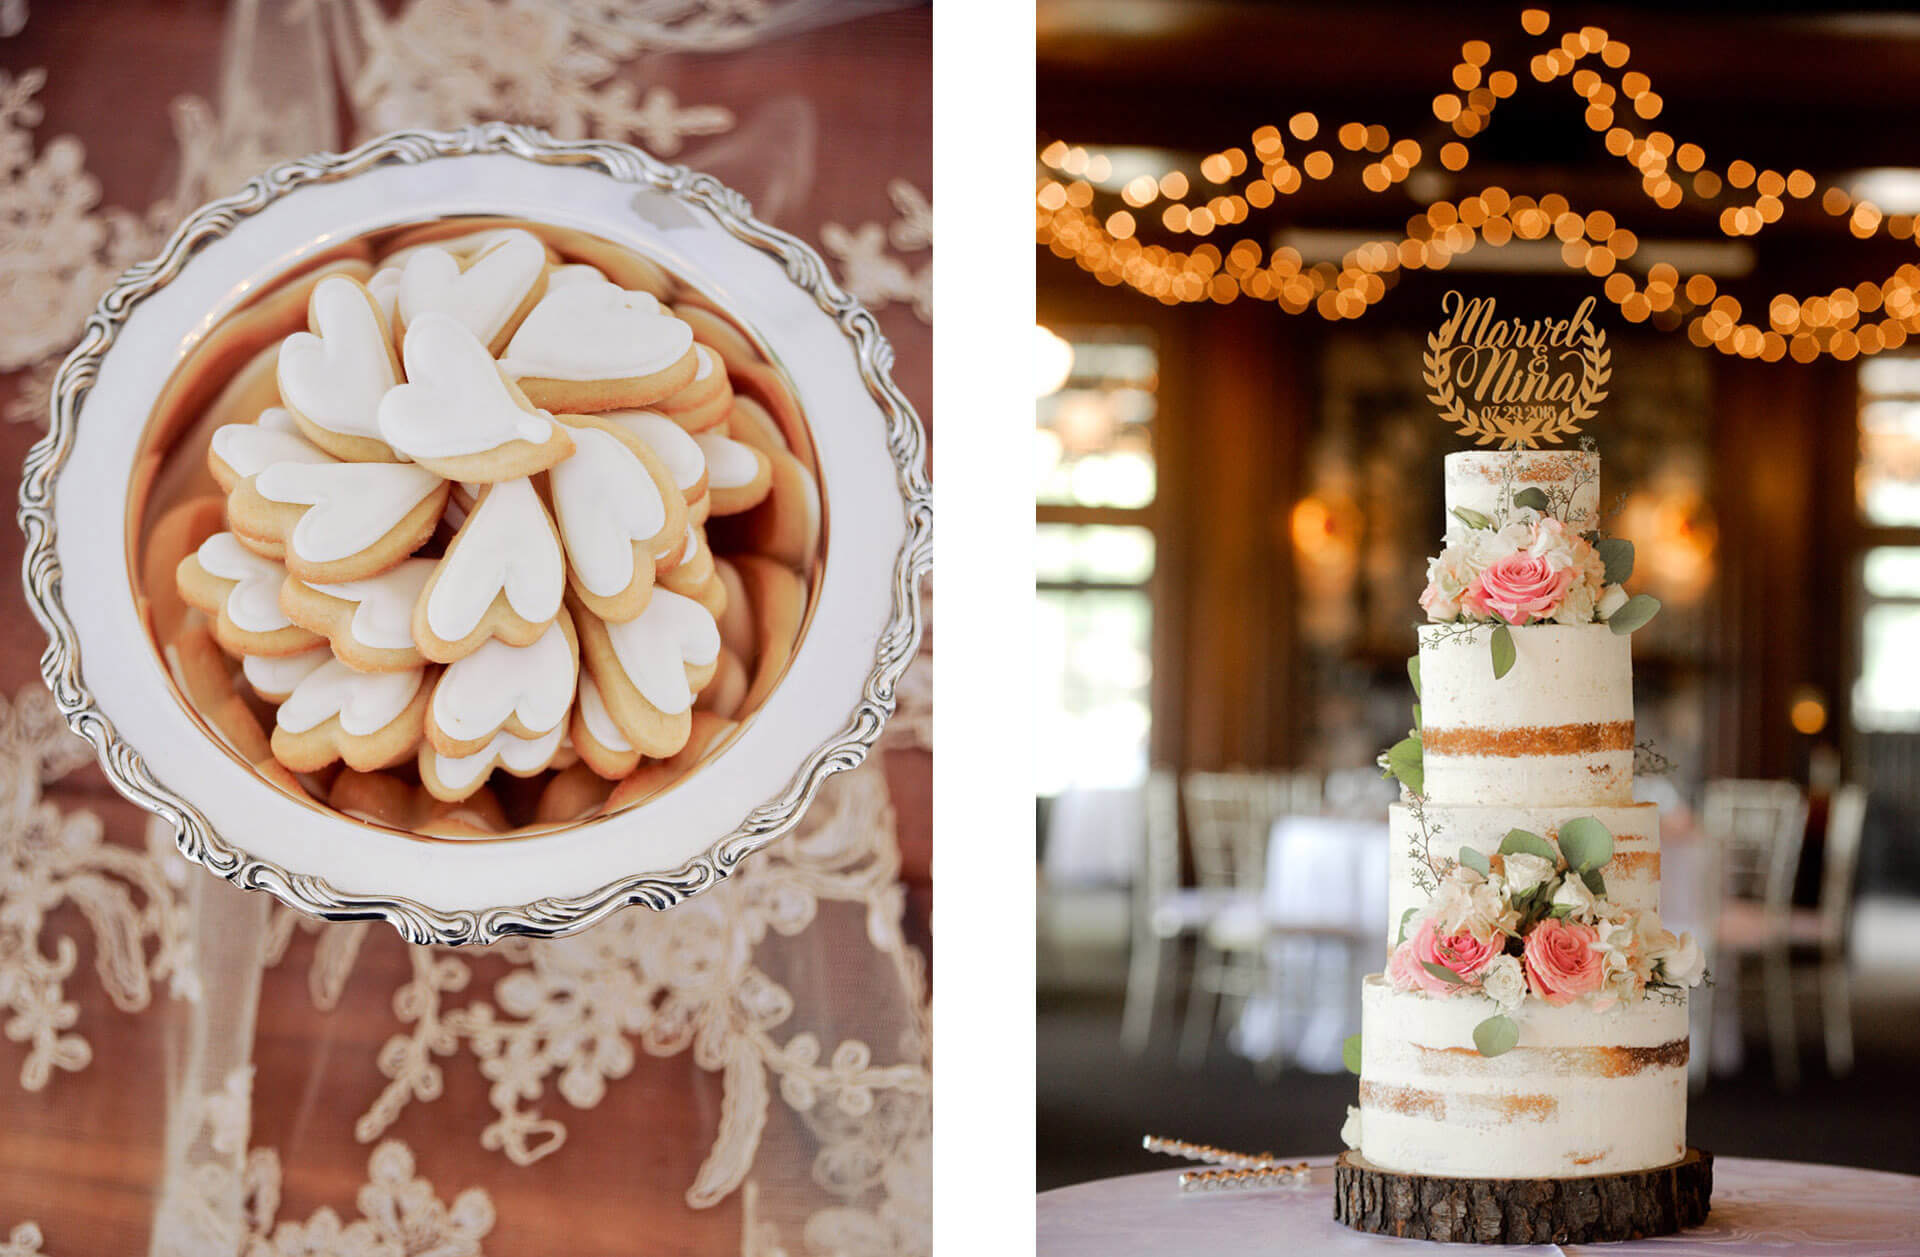 Famous Food Network star baker, Michelle with her wedding cake and ginger cookies during an elegant rustic wedding for the Holly Hotel in Holly, Michigan.